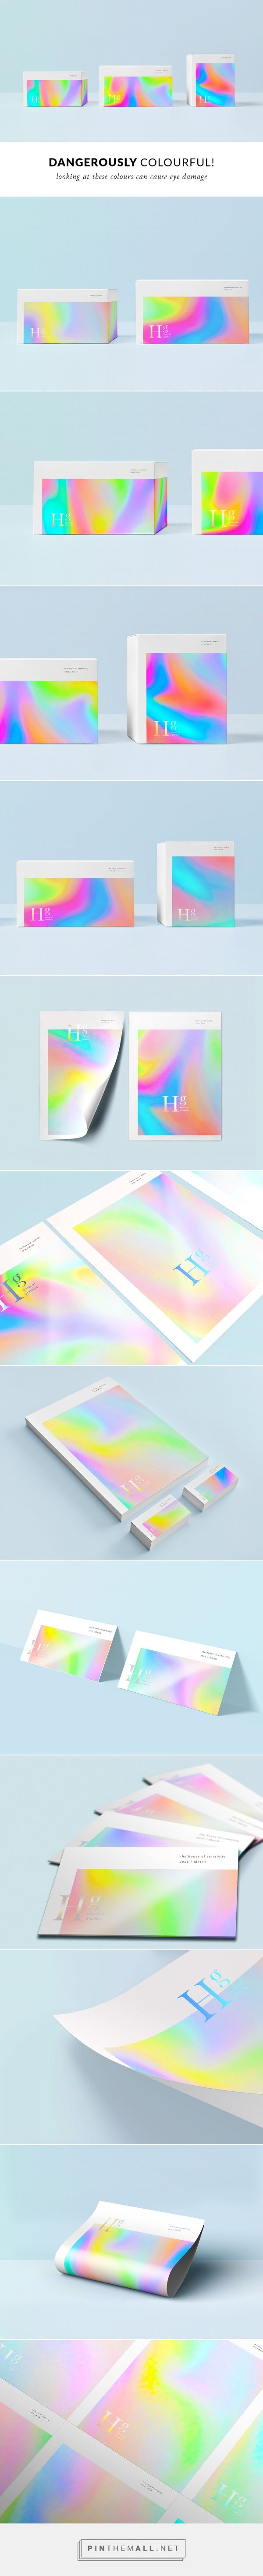 House of Graphics | the house of creativity on Behance - created via https://pinthemall.net